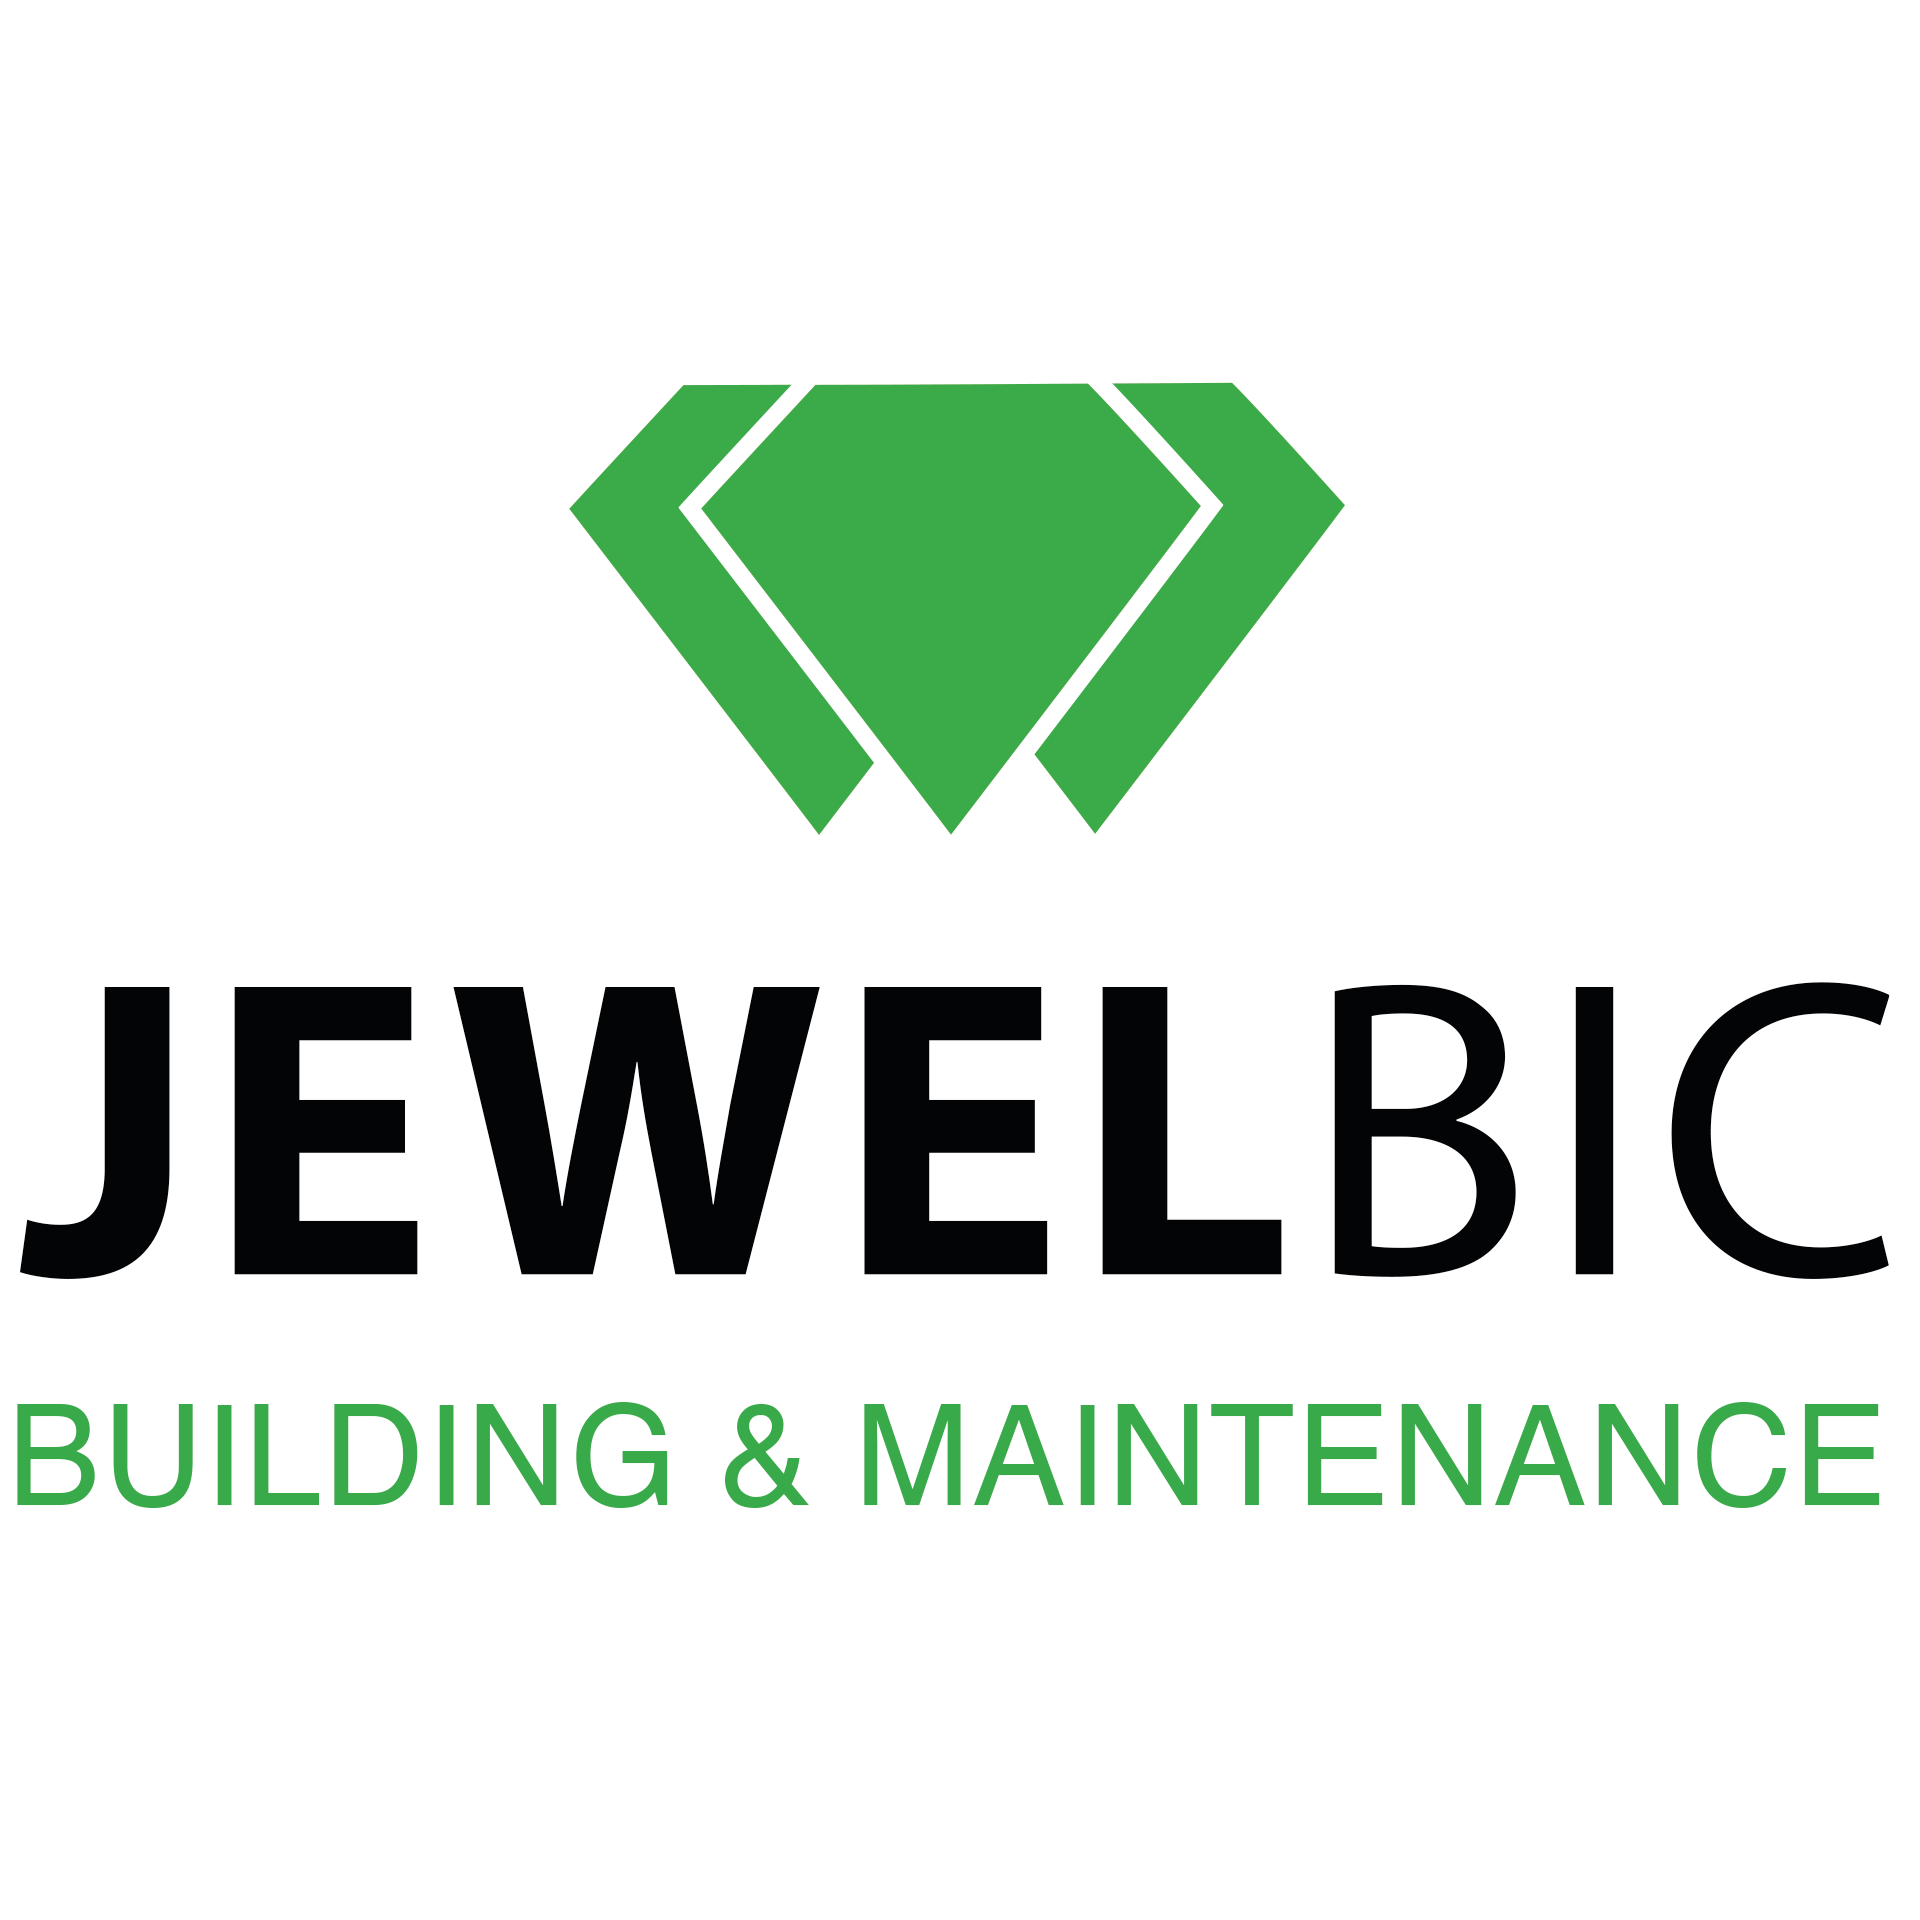 Jewelbic Building & Maintenance